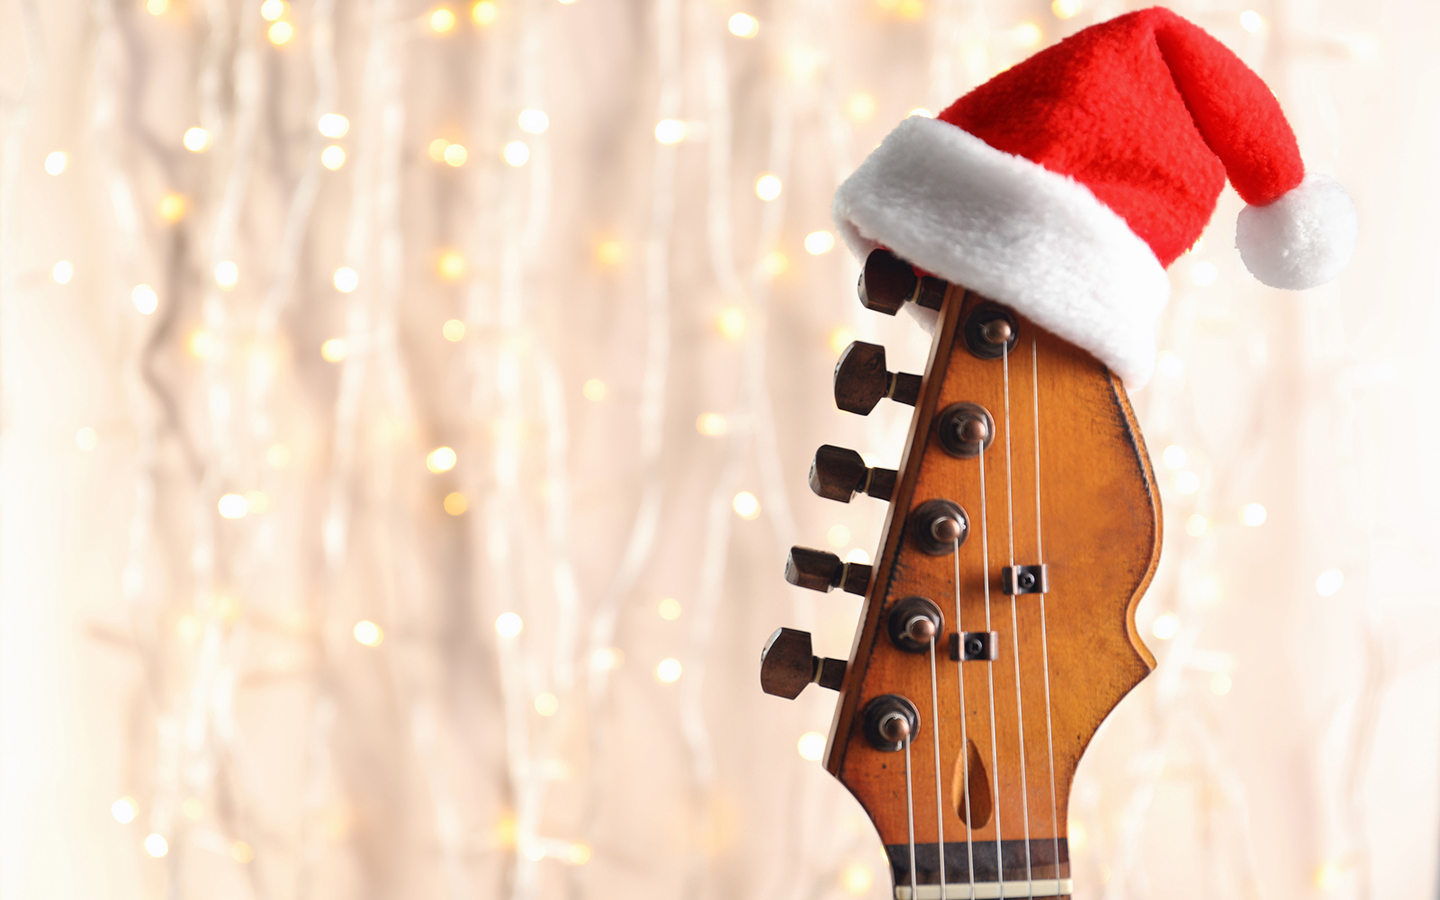 A guitar topped by a santa hat sitting in front of a string of lights